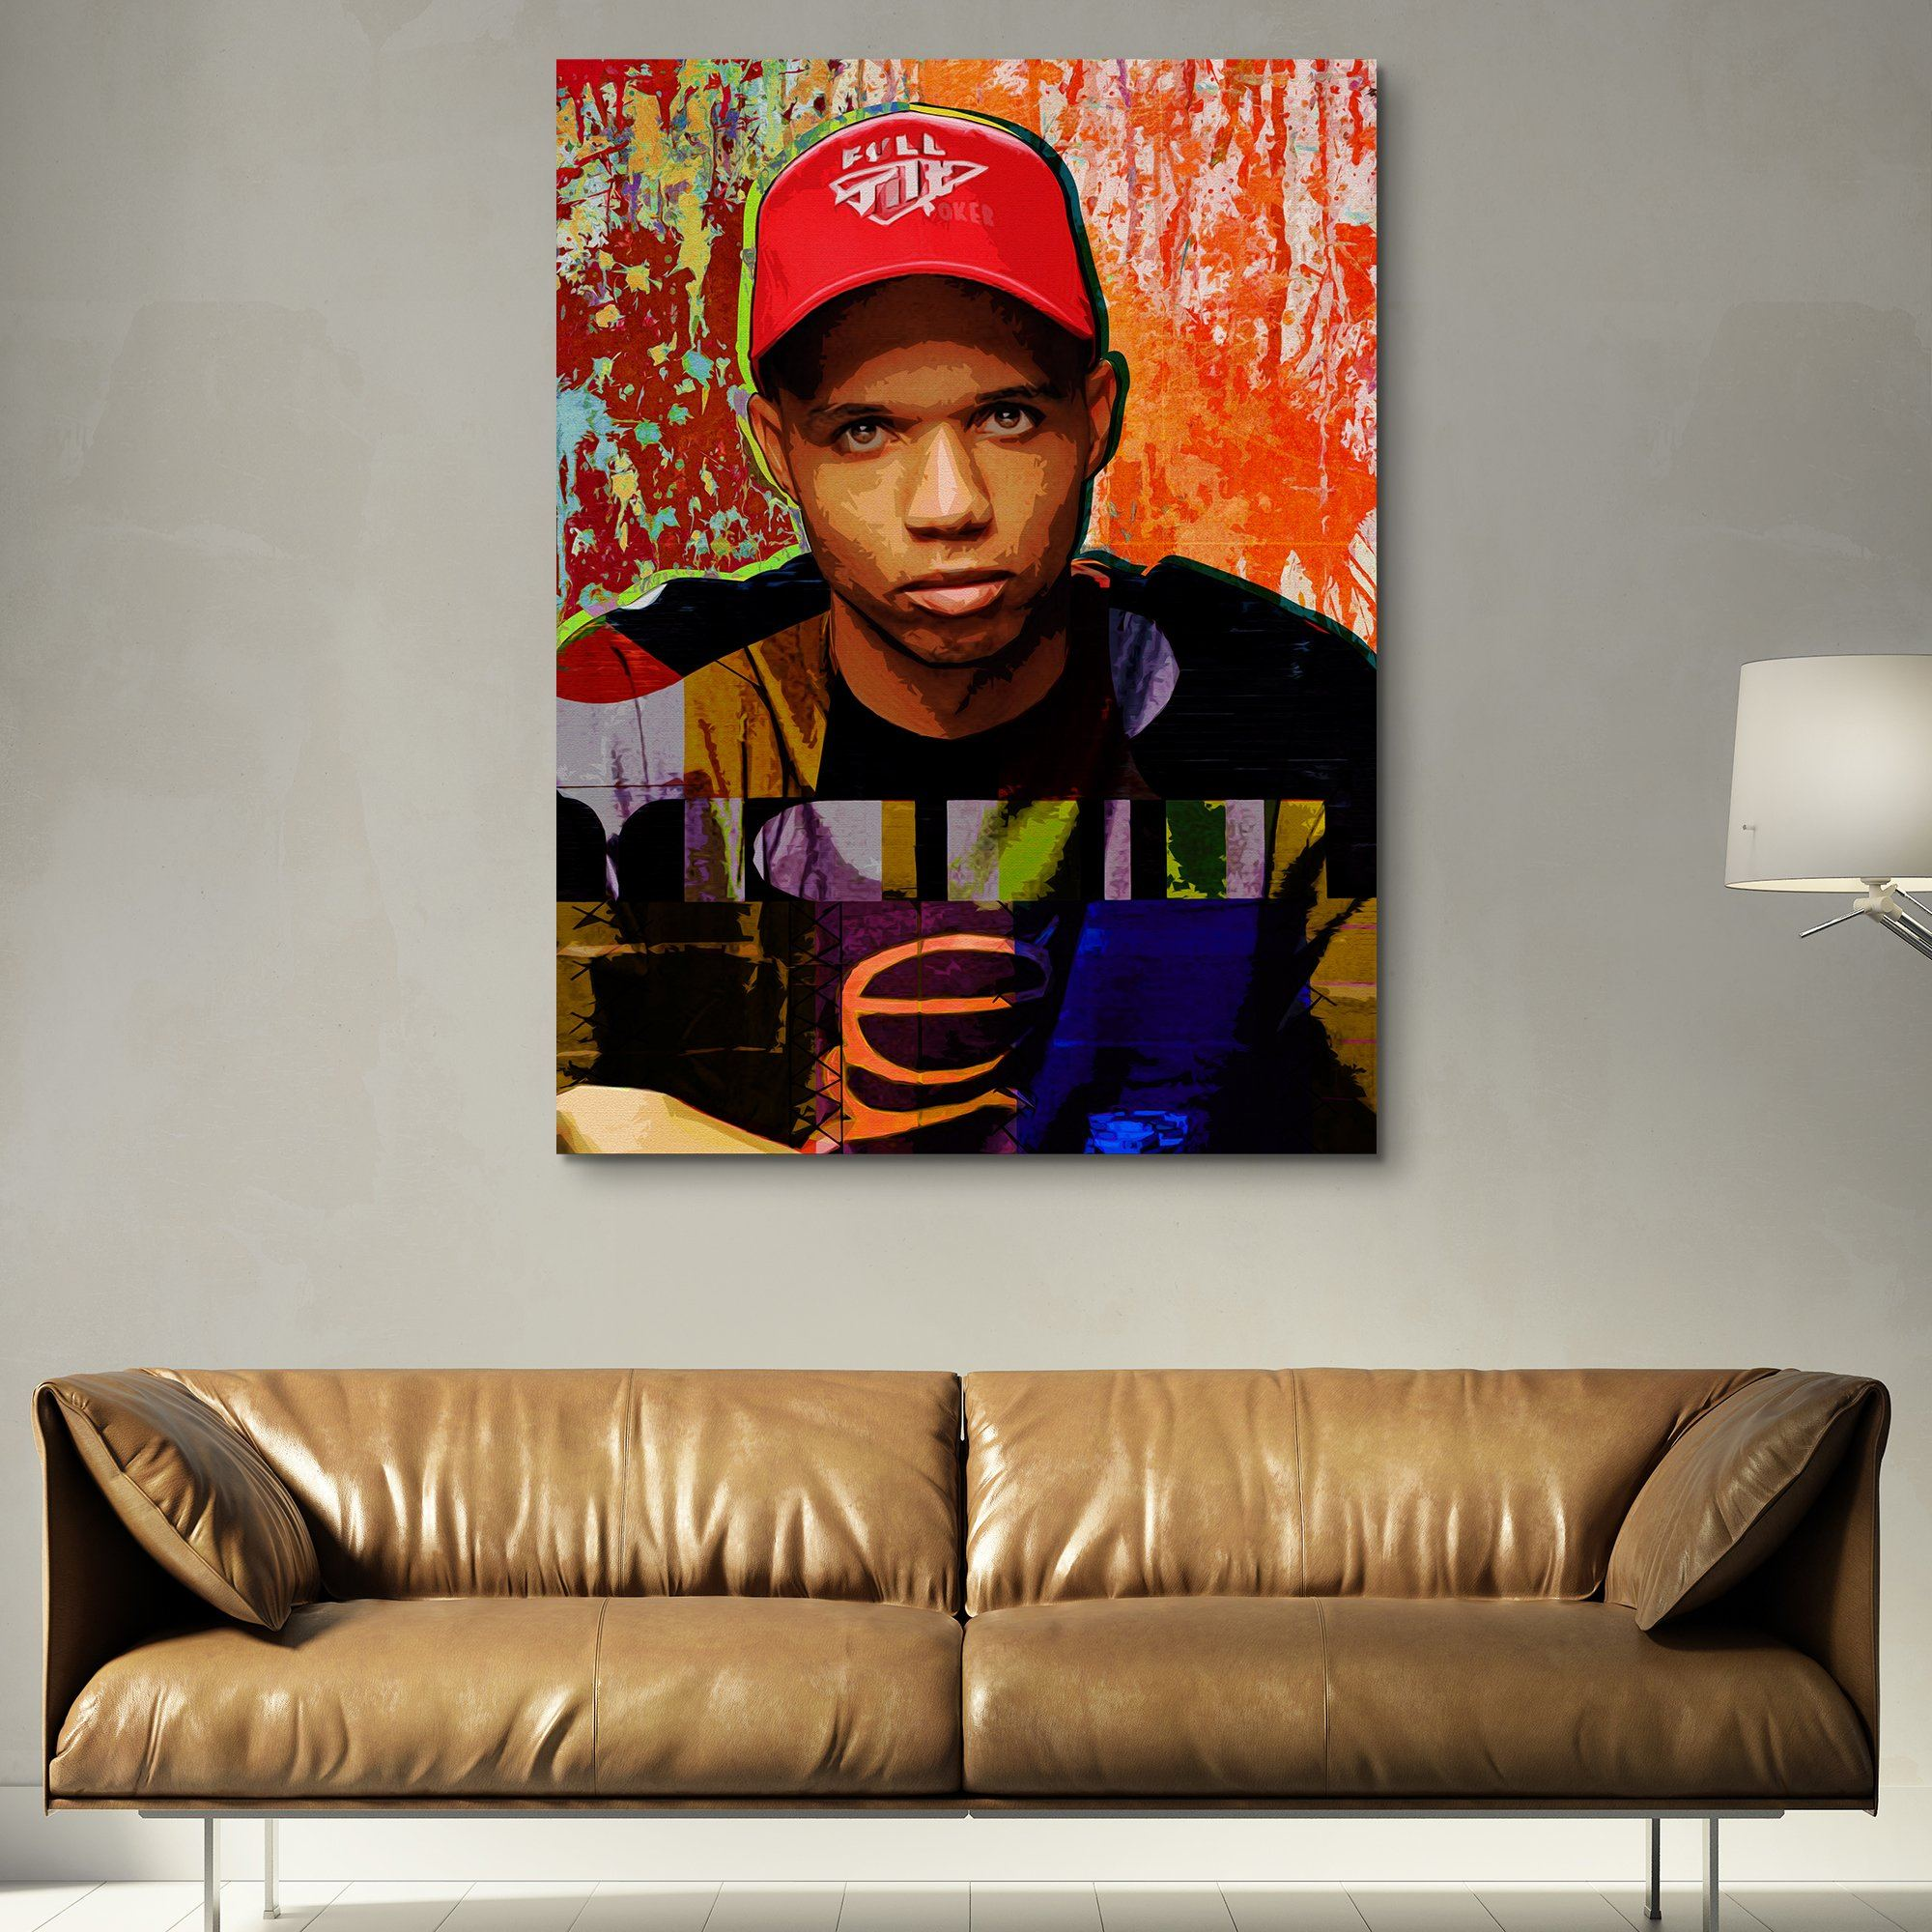 Phil Ivey wall art